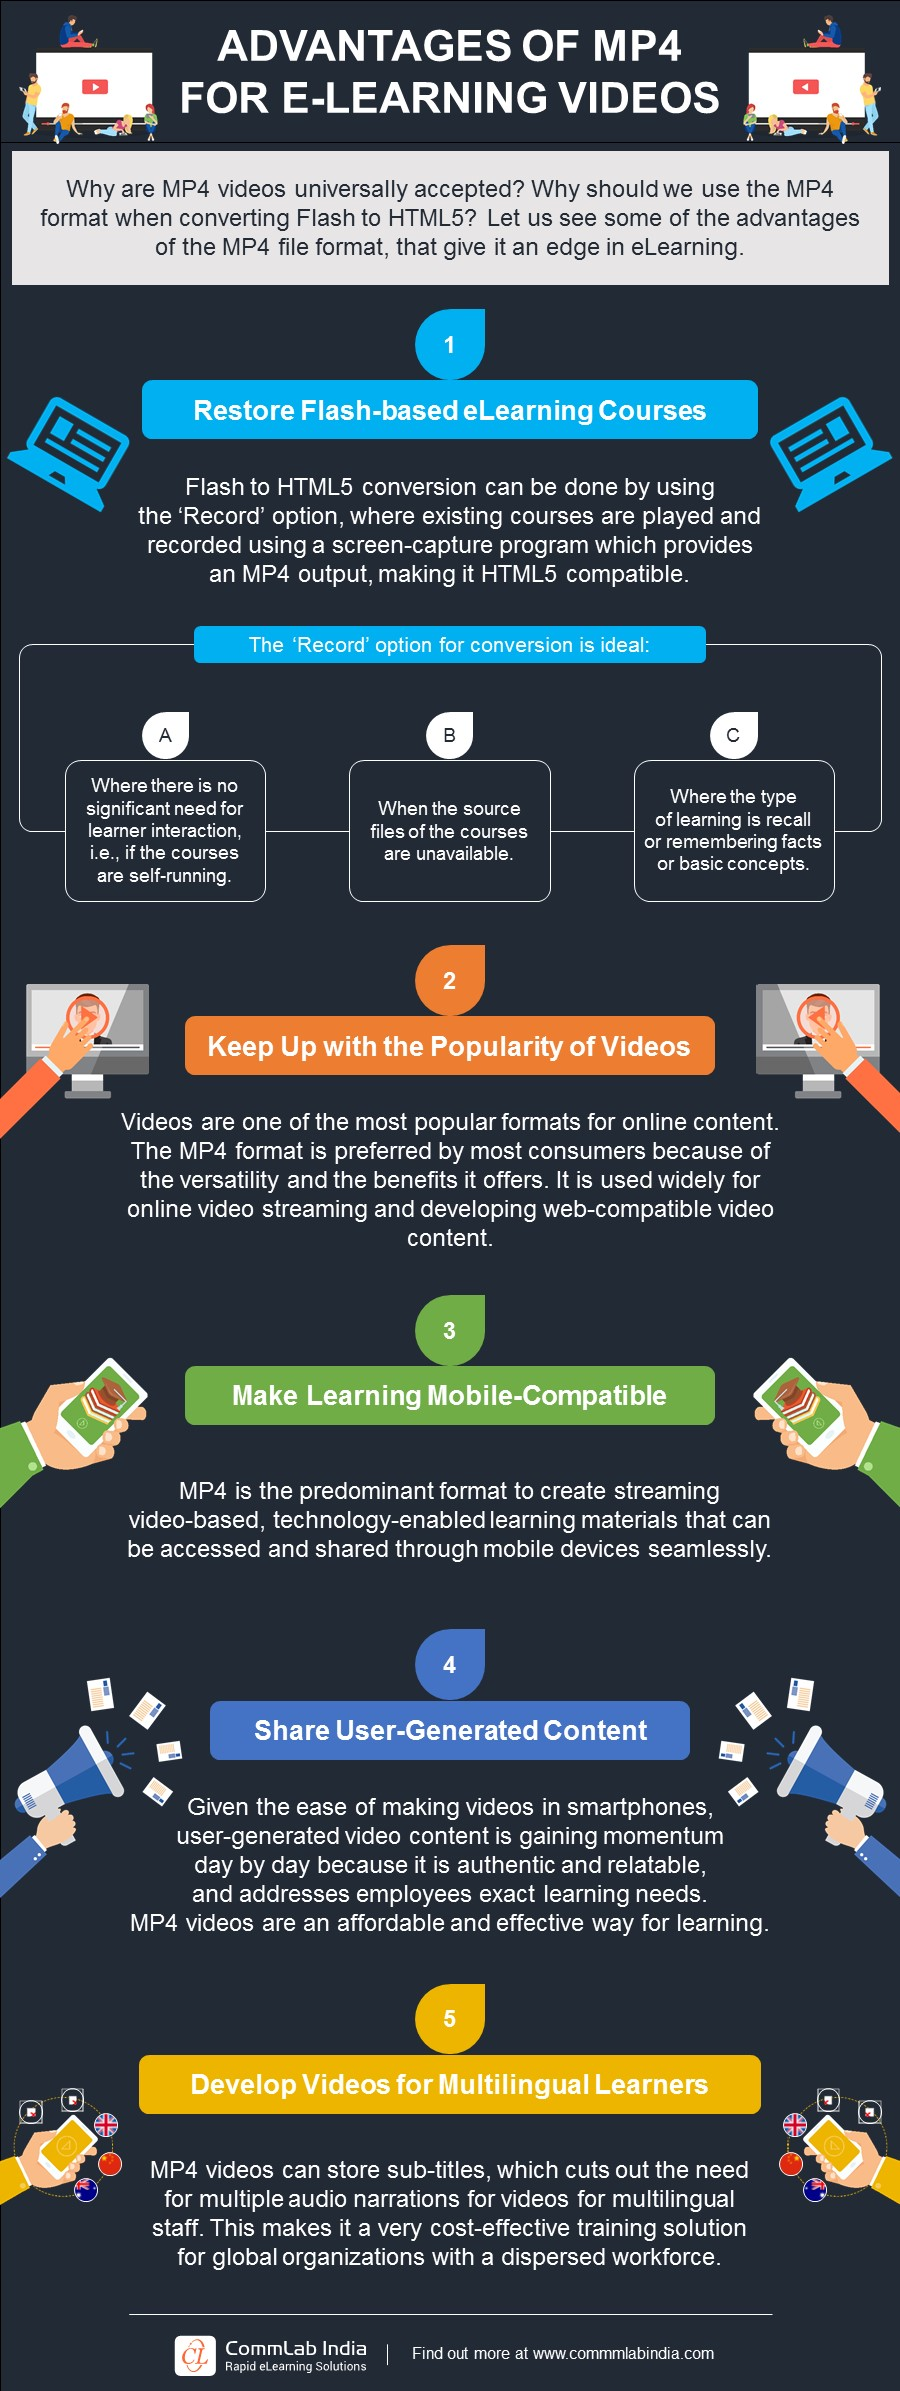 Advantages of MP4 for E-learning Videos [Infographic]